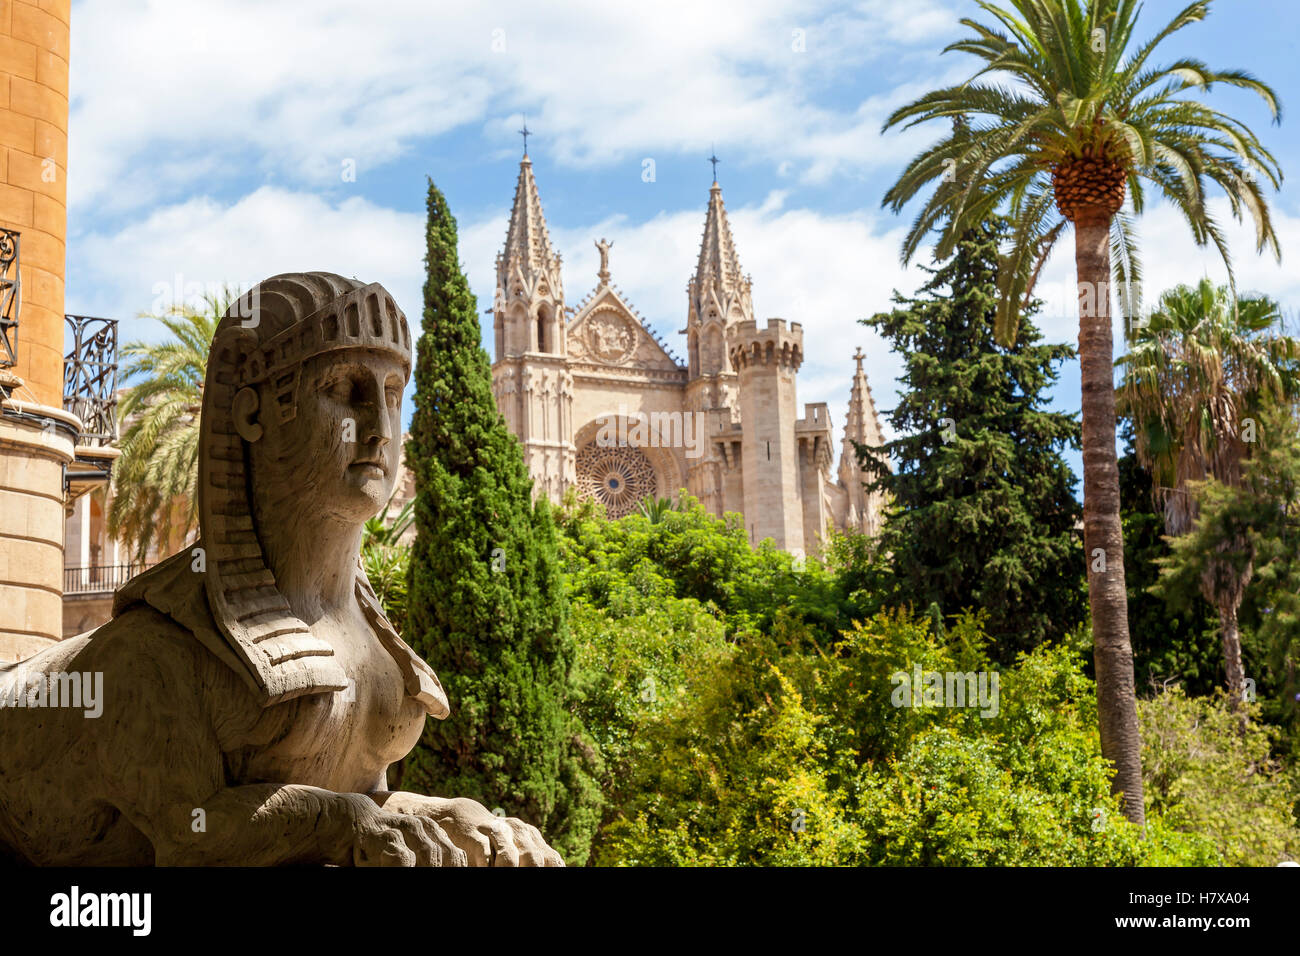 Cathedral of Santa Maria in Palma. Statue of the Sphinx in the background of the Cathedral of Santa Maria in the - Stock Image